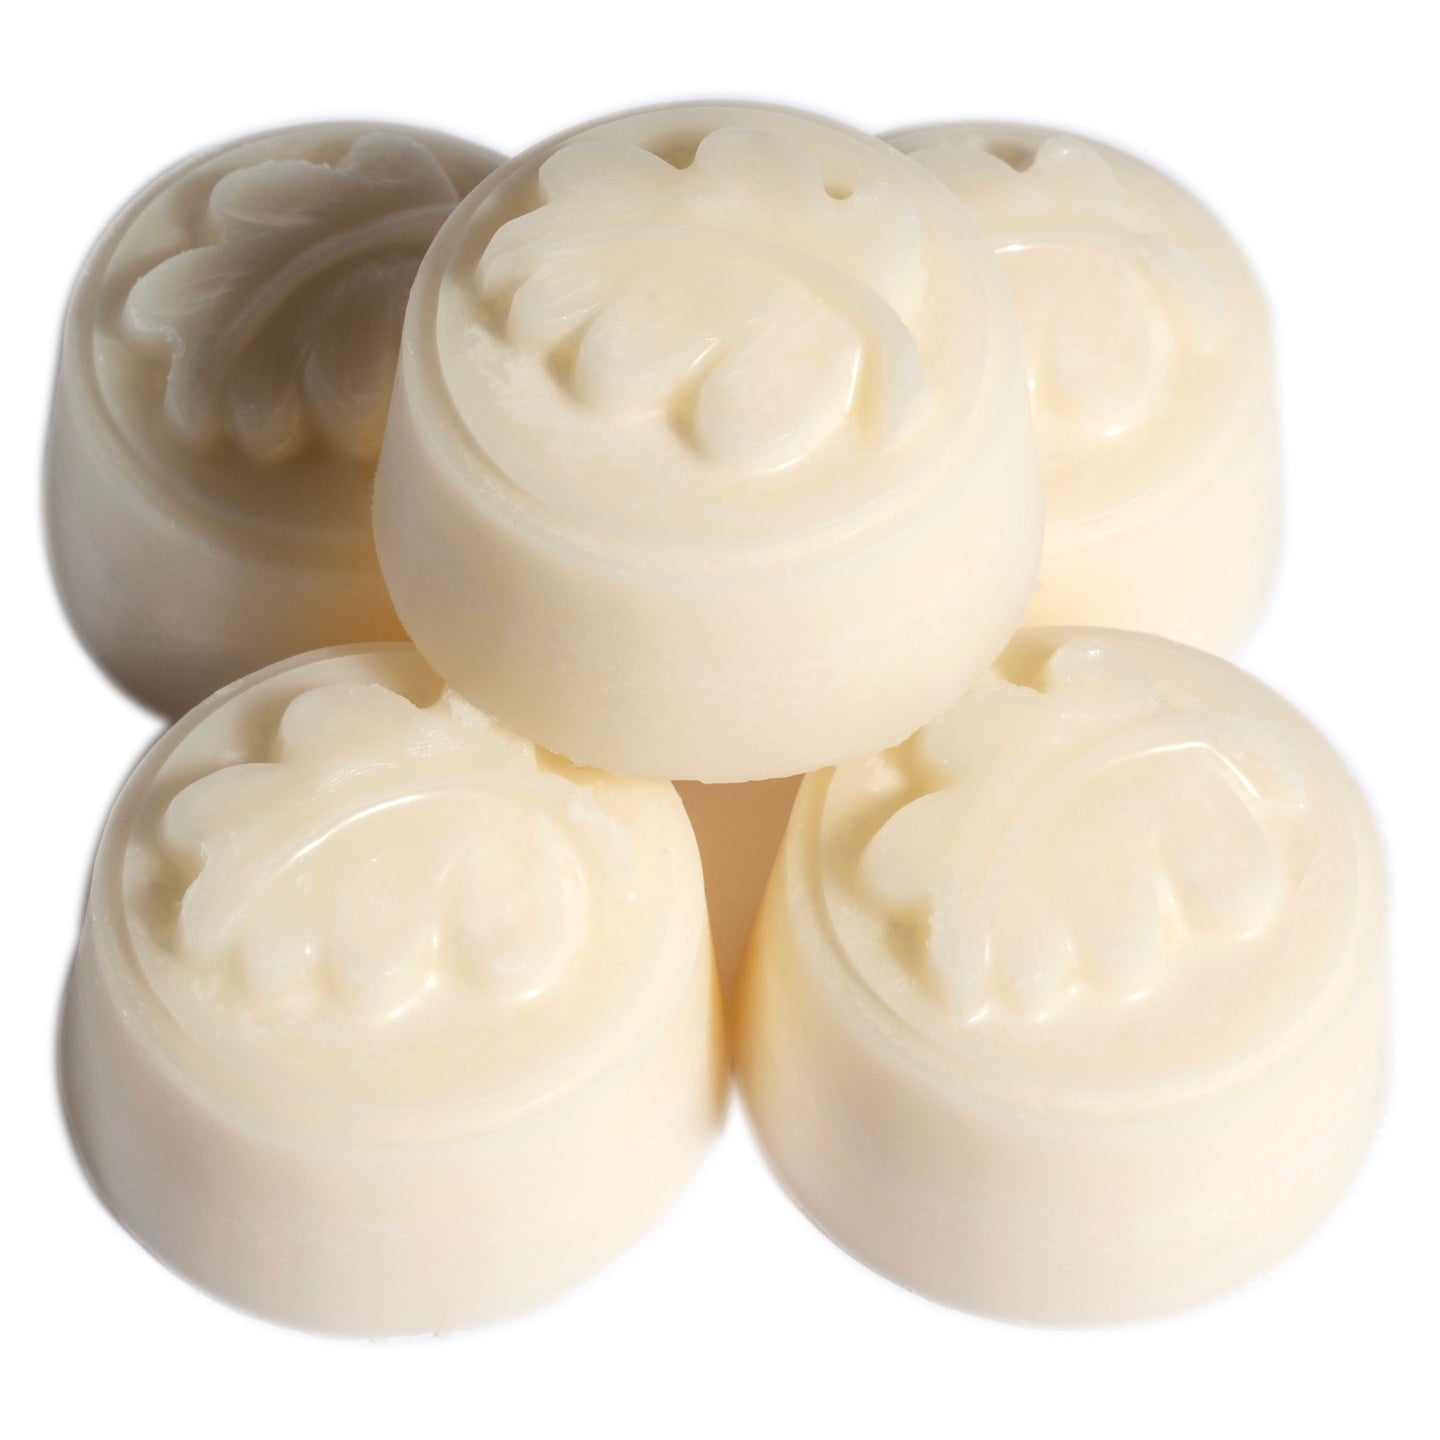 Christmas Limited Edition - 5 Large Soy Wax Melts - By Kerryn